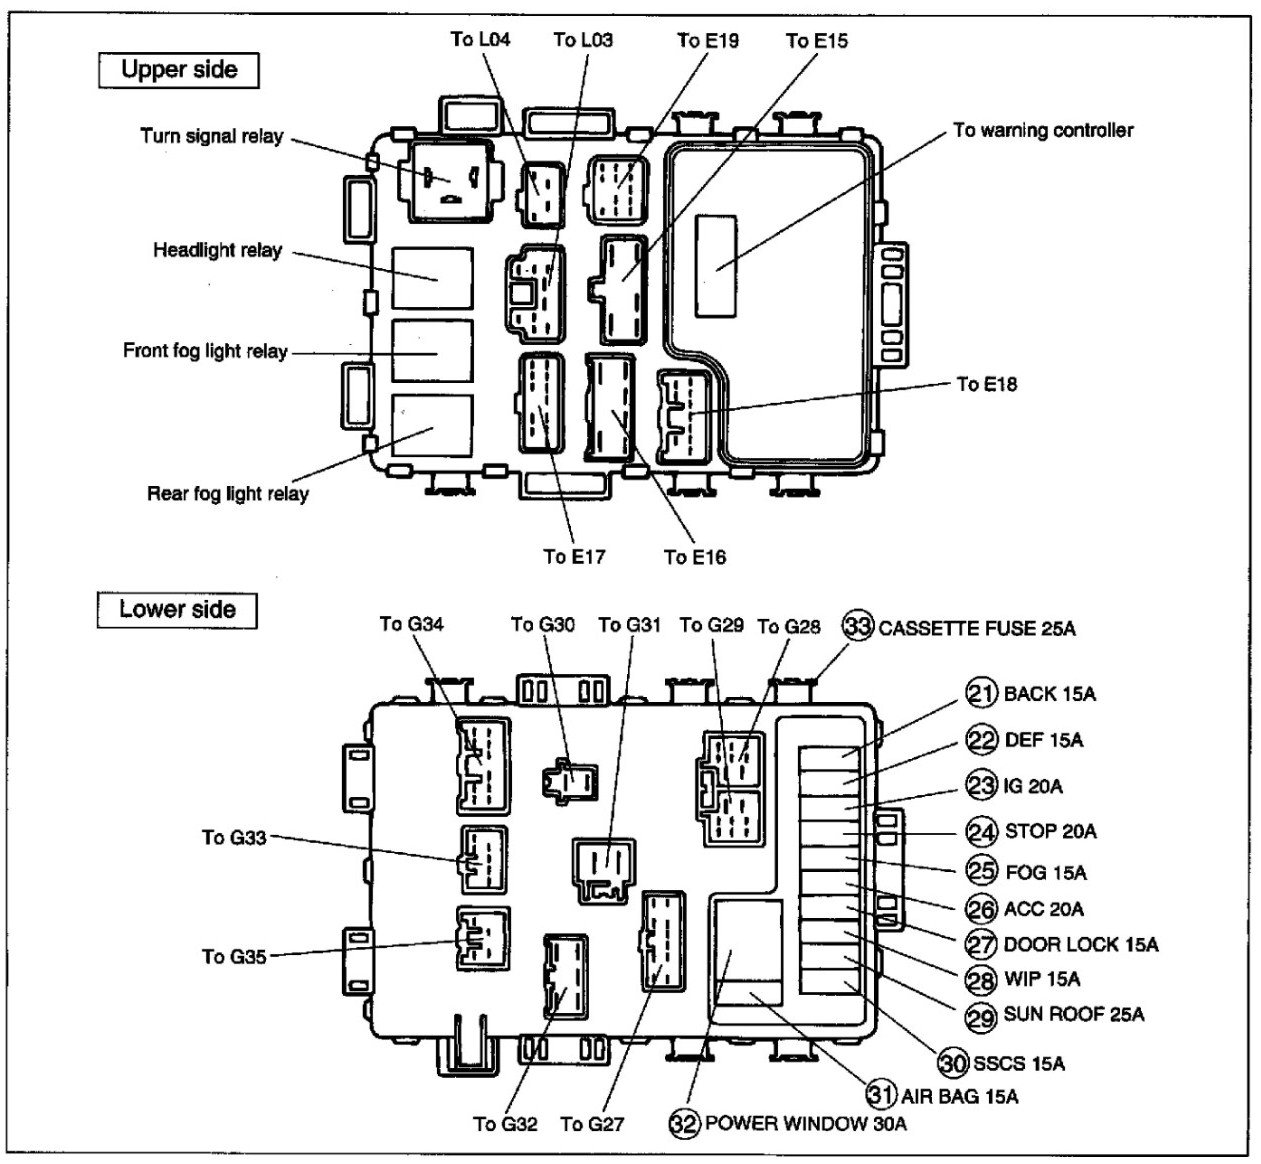 OL_5685] 1998 Suzuki Esteem Fuse Box Diagram Download DiagramPila Kapemie Over Brece Cosm Sapebe Mohammedshrine Librar Wiring 101